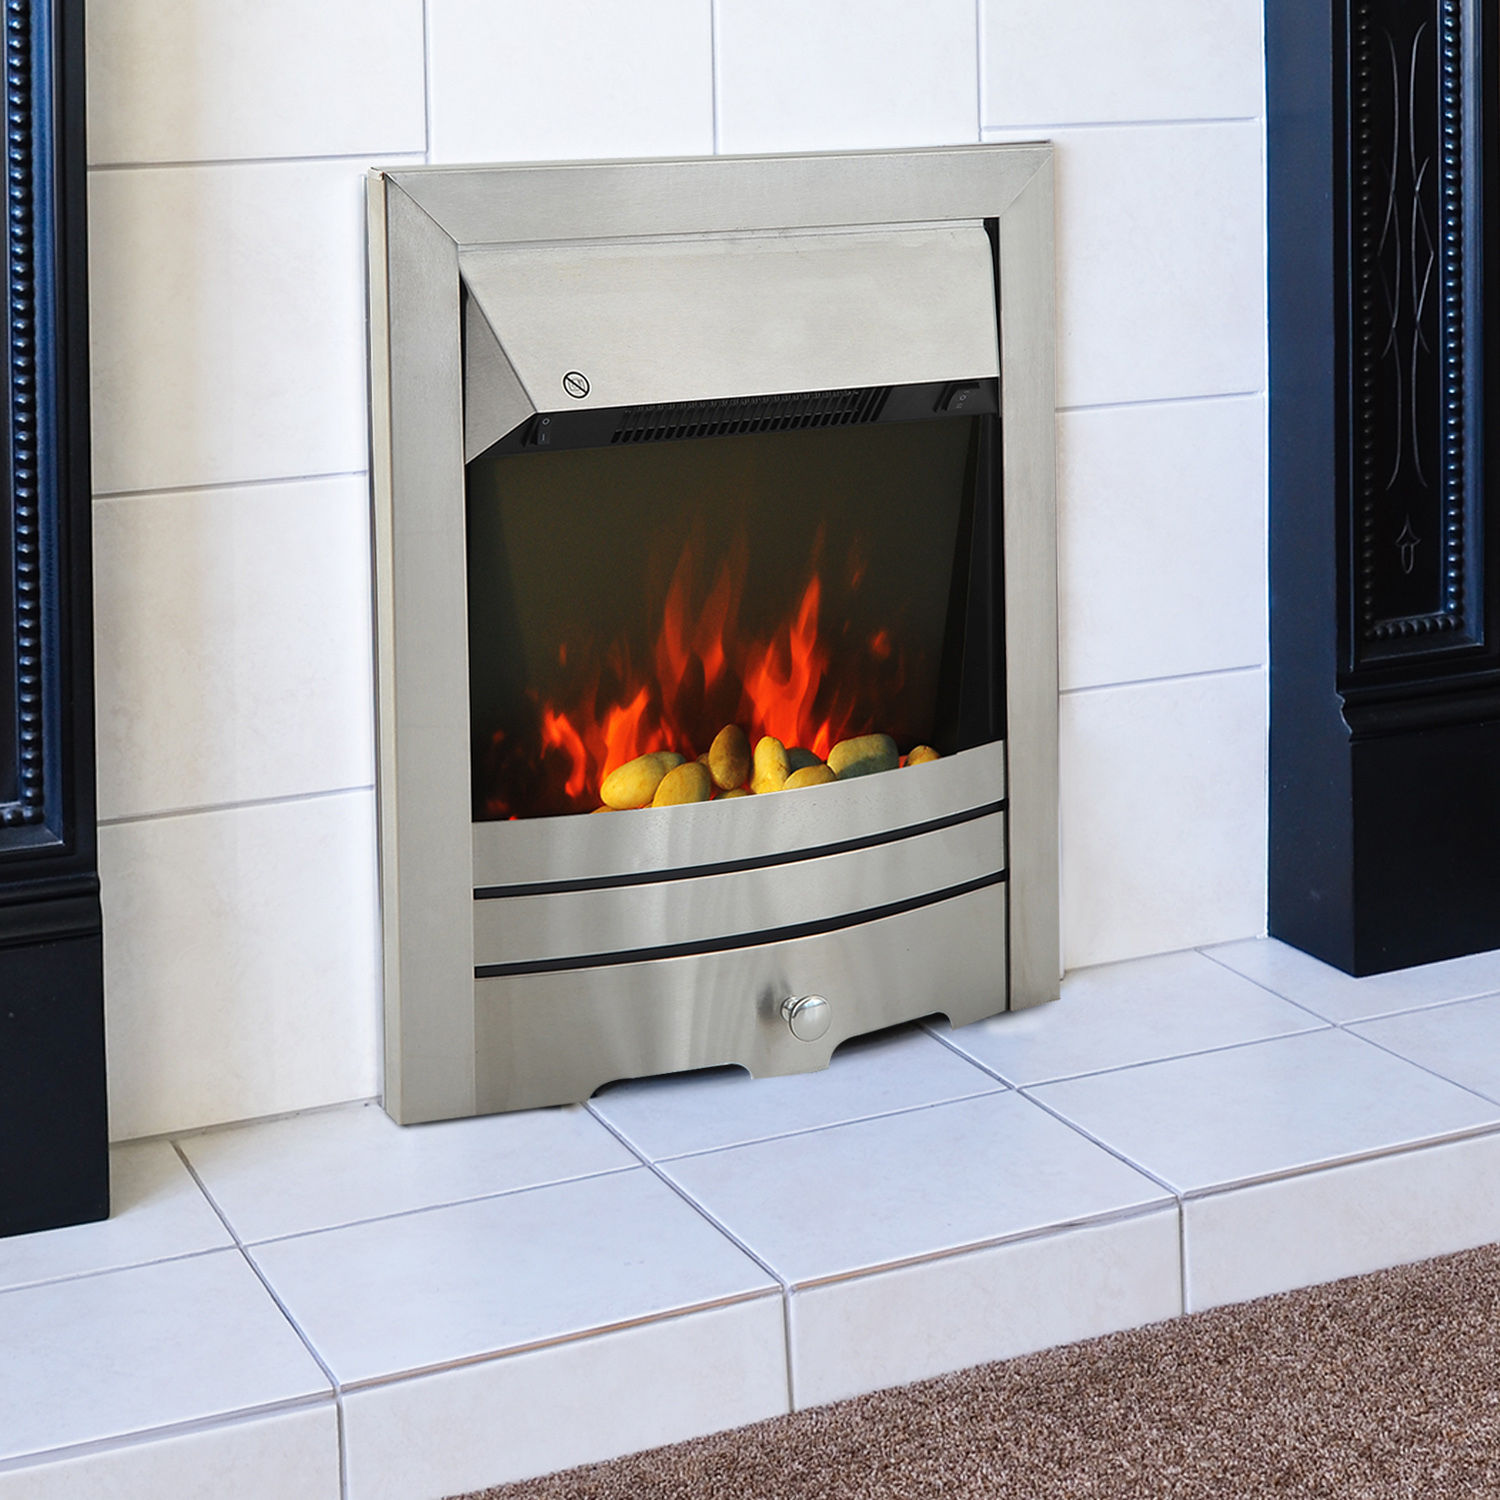 Image of £92.99 HOMCOM LED Flame Electric Fire Place-Stainless Steel / 2KW Stainless Fireplace Pebble Burning Effect Heater Indoor Stove Lighting 2000W 820-046 5055974831971